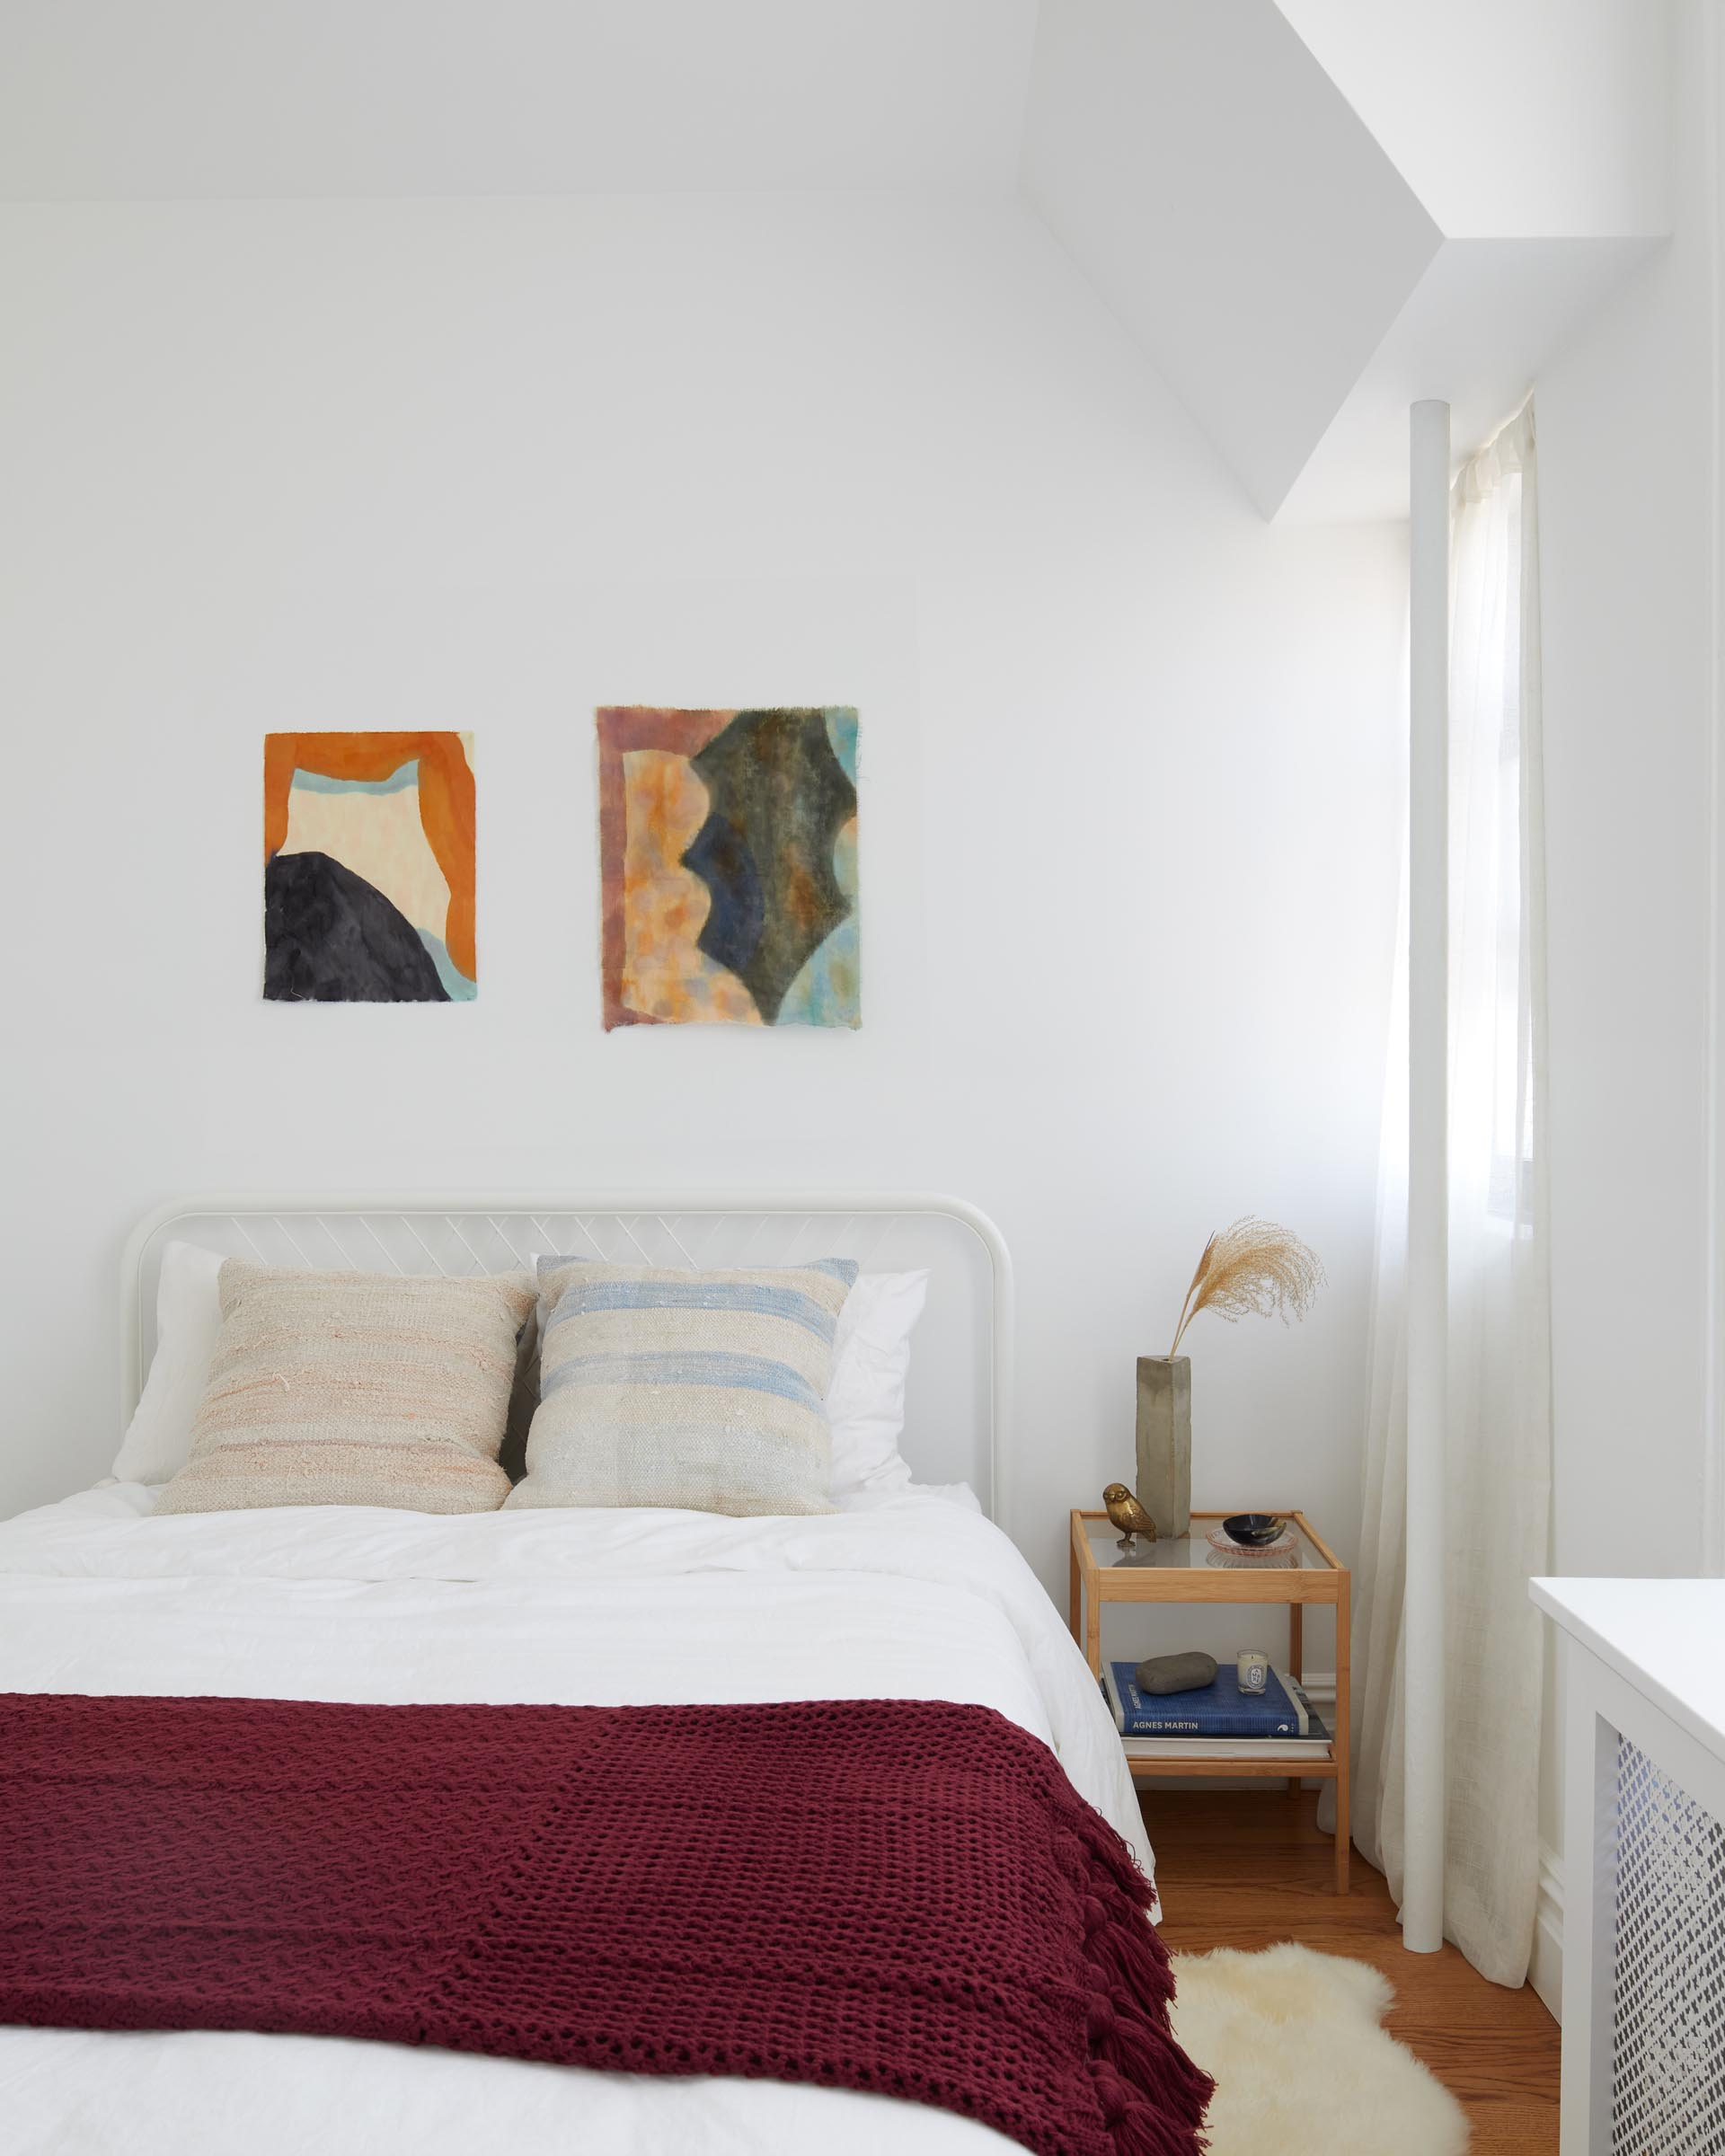 In this guest bedroom, bright and colorful accents stand out against the light-colored walls.